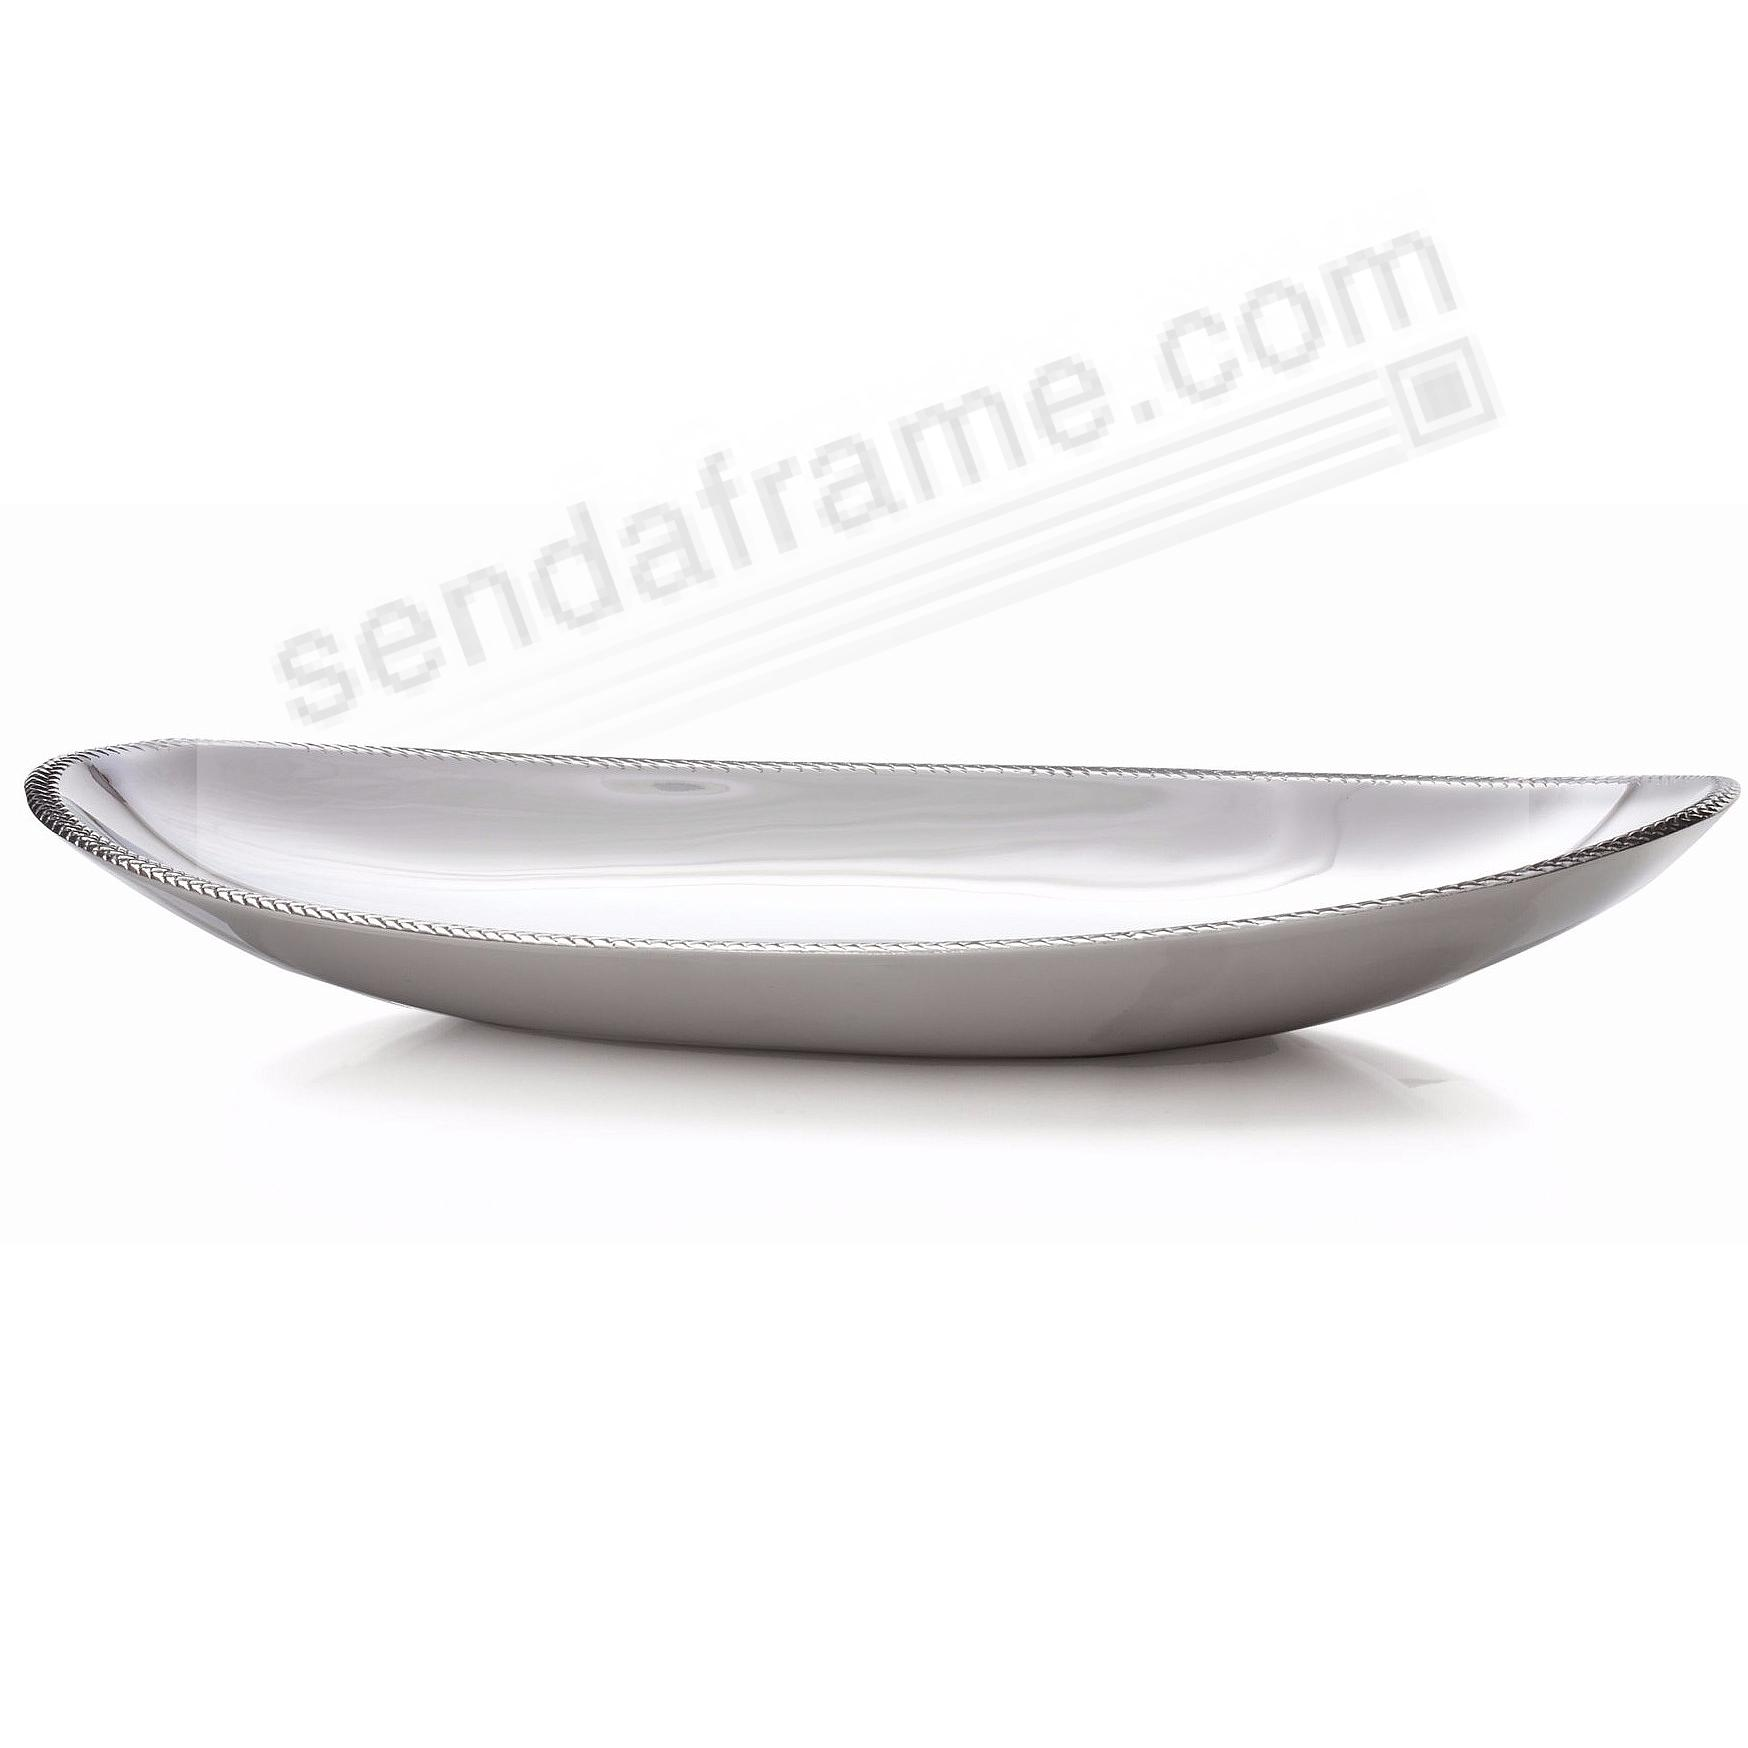 The BRAID OVAL SERVING PLATTER 18-in by Nambe®